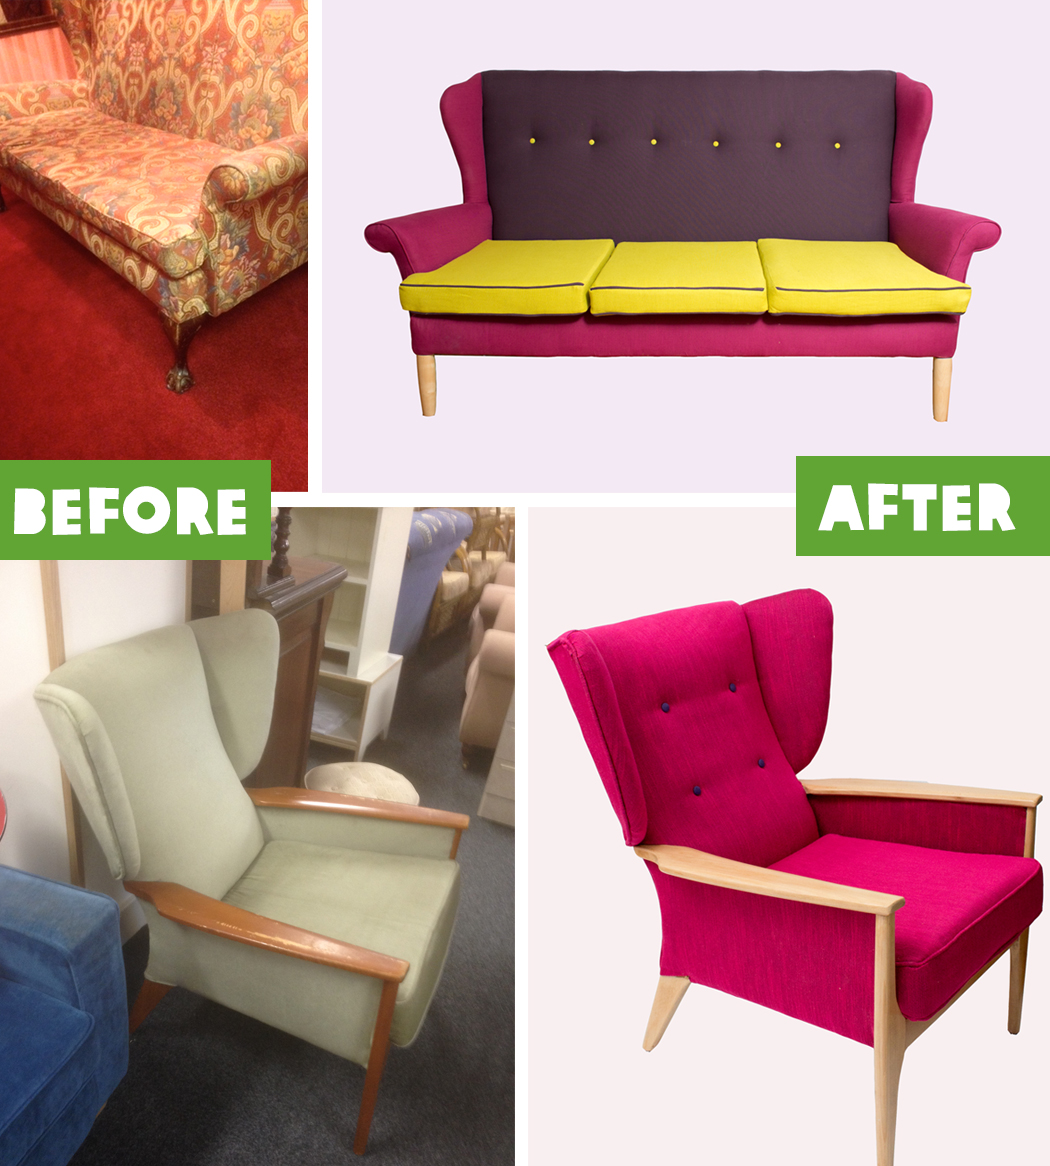 Upcycling before and after find your project at oxfam for Furniture upcycling